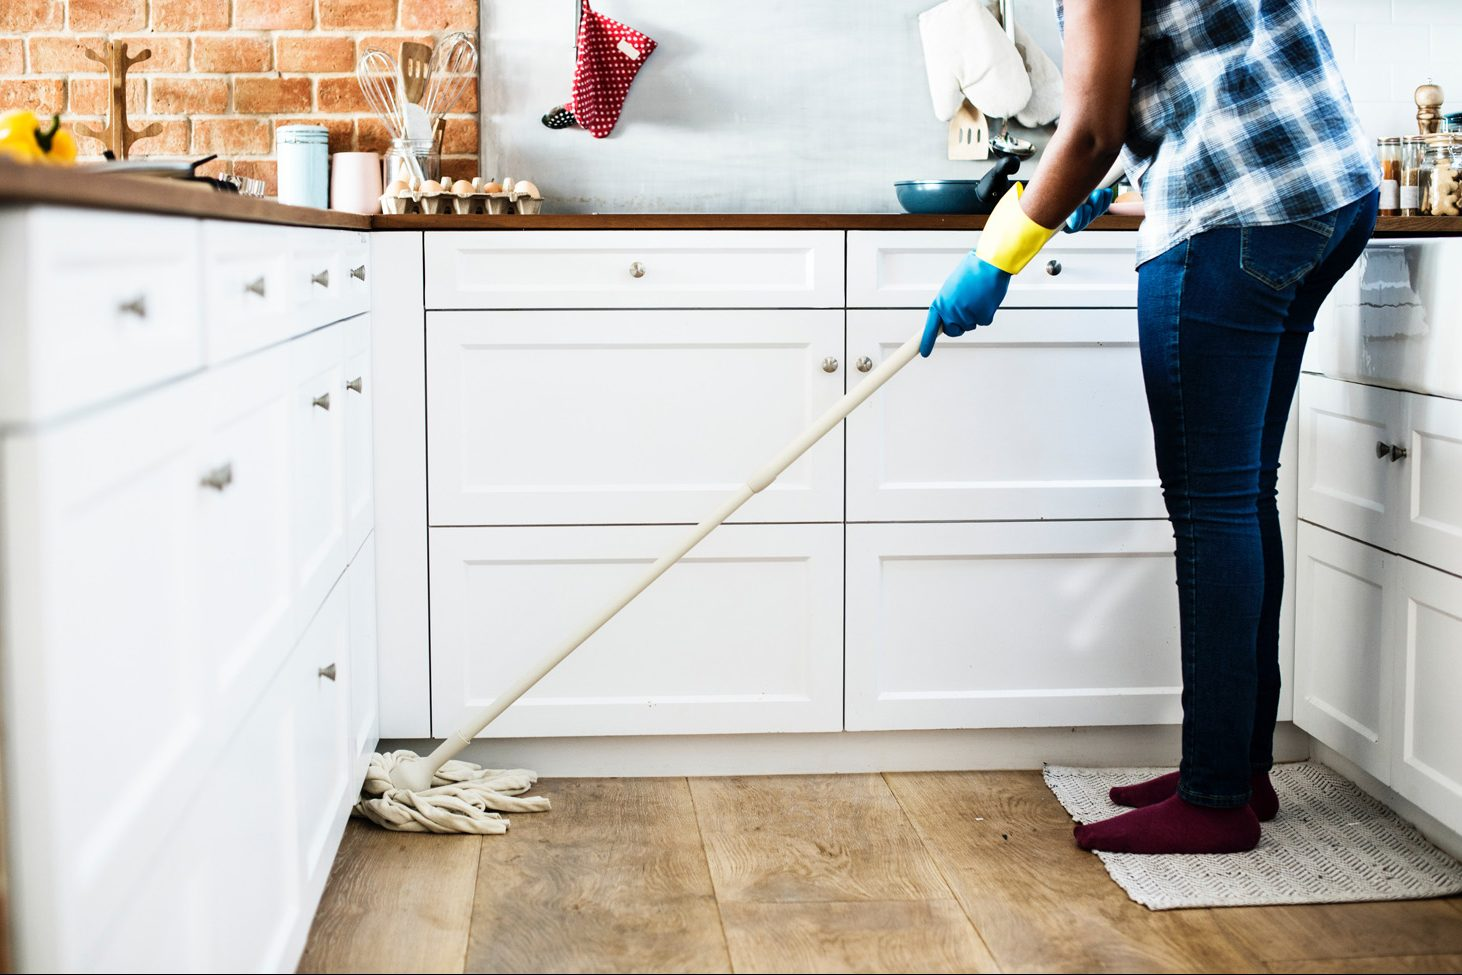 chores-cleaning-contemporary-1321730